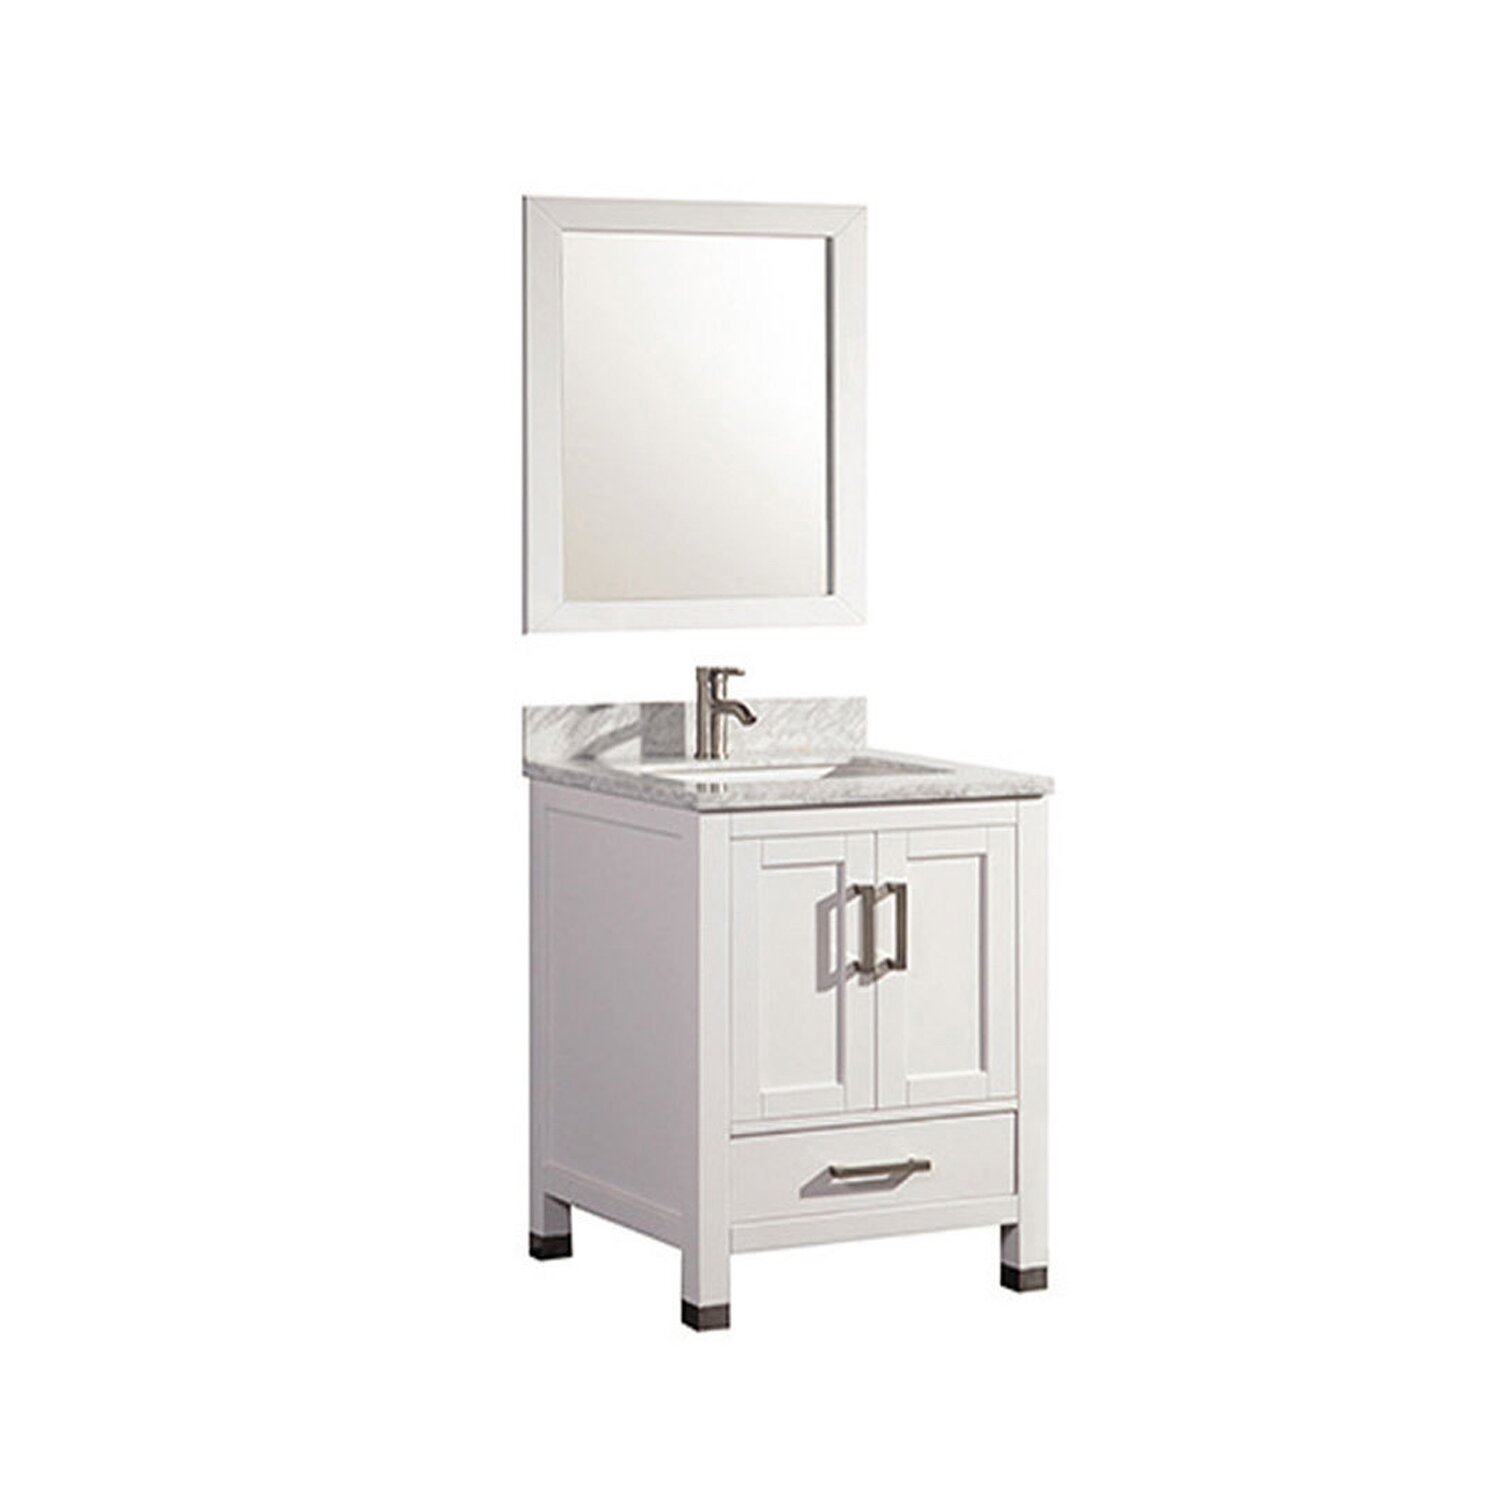 Mtdvanities Ricca 24 Single Sink Bathroom Vanity Set With Mirror Reviews Wayfair